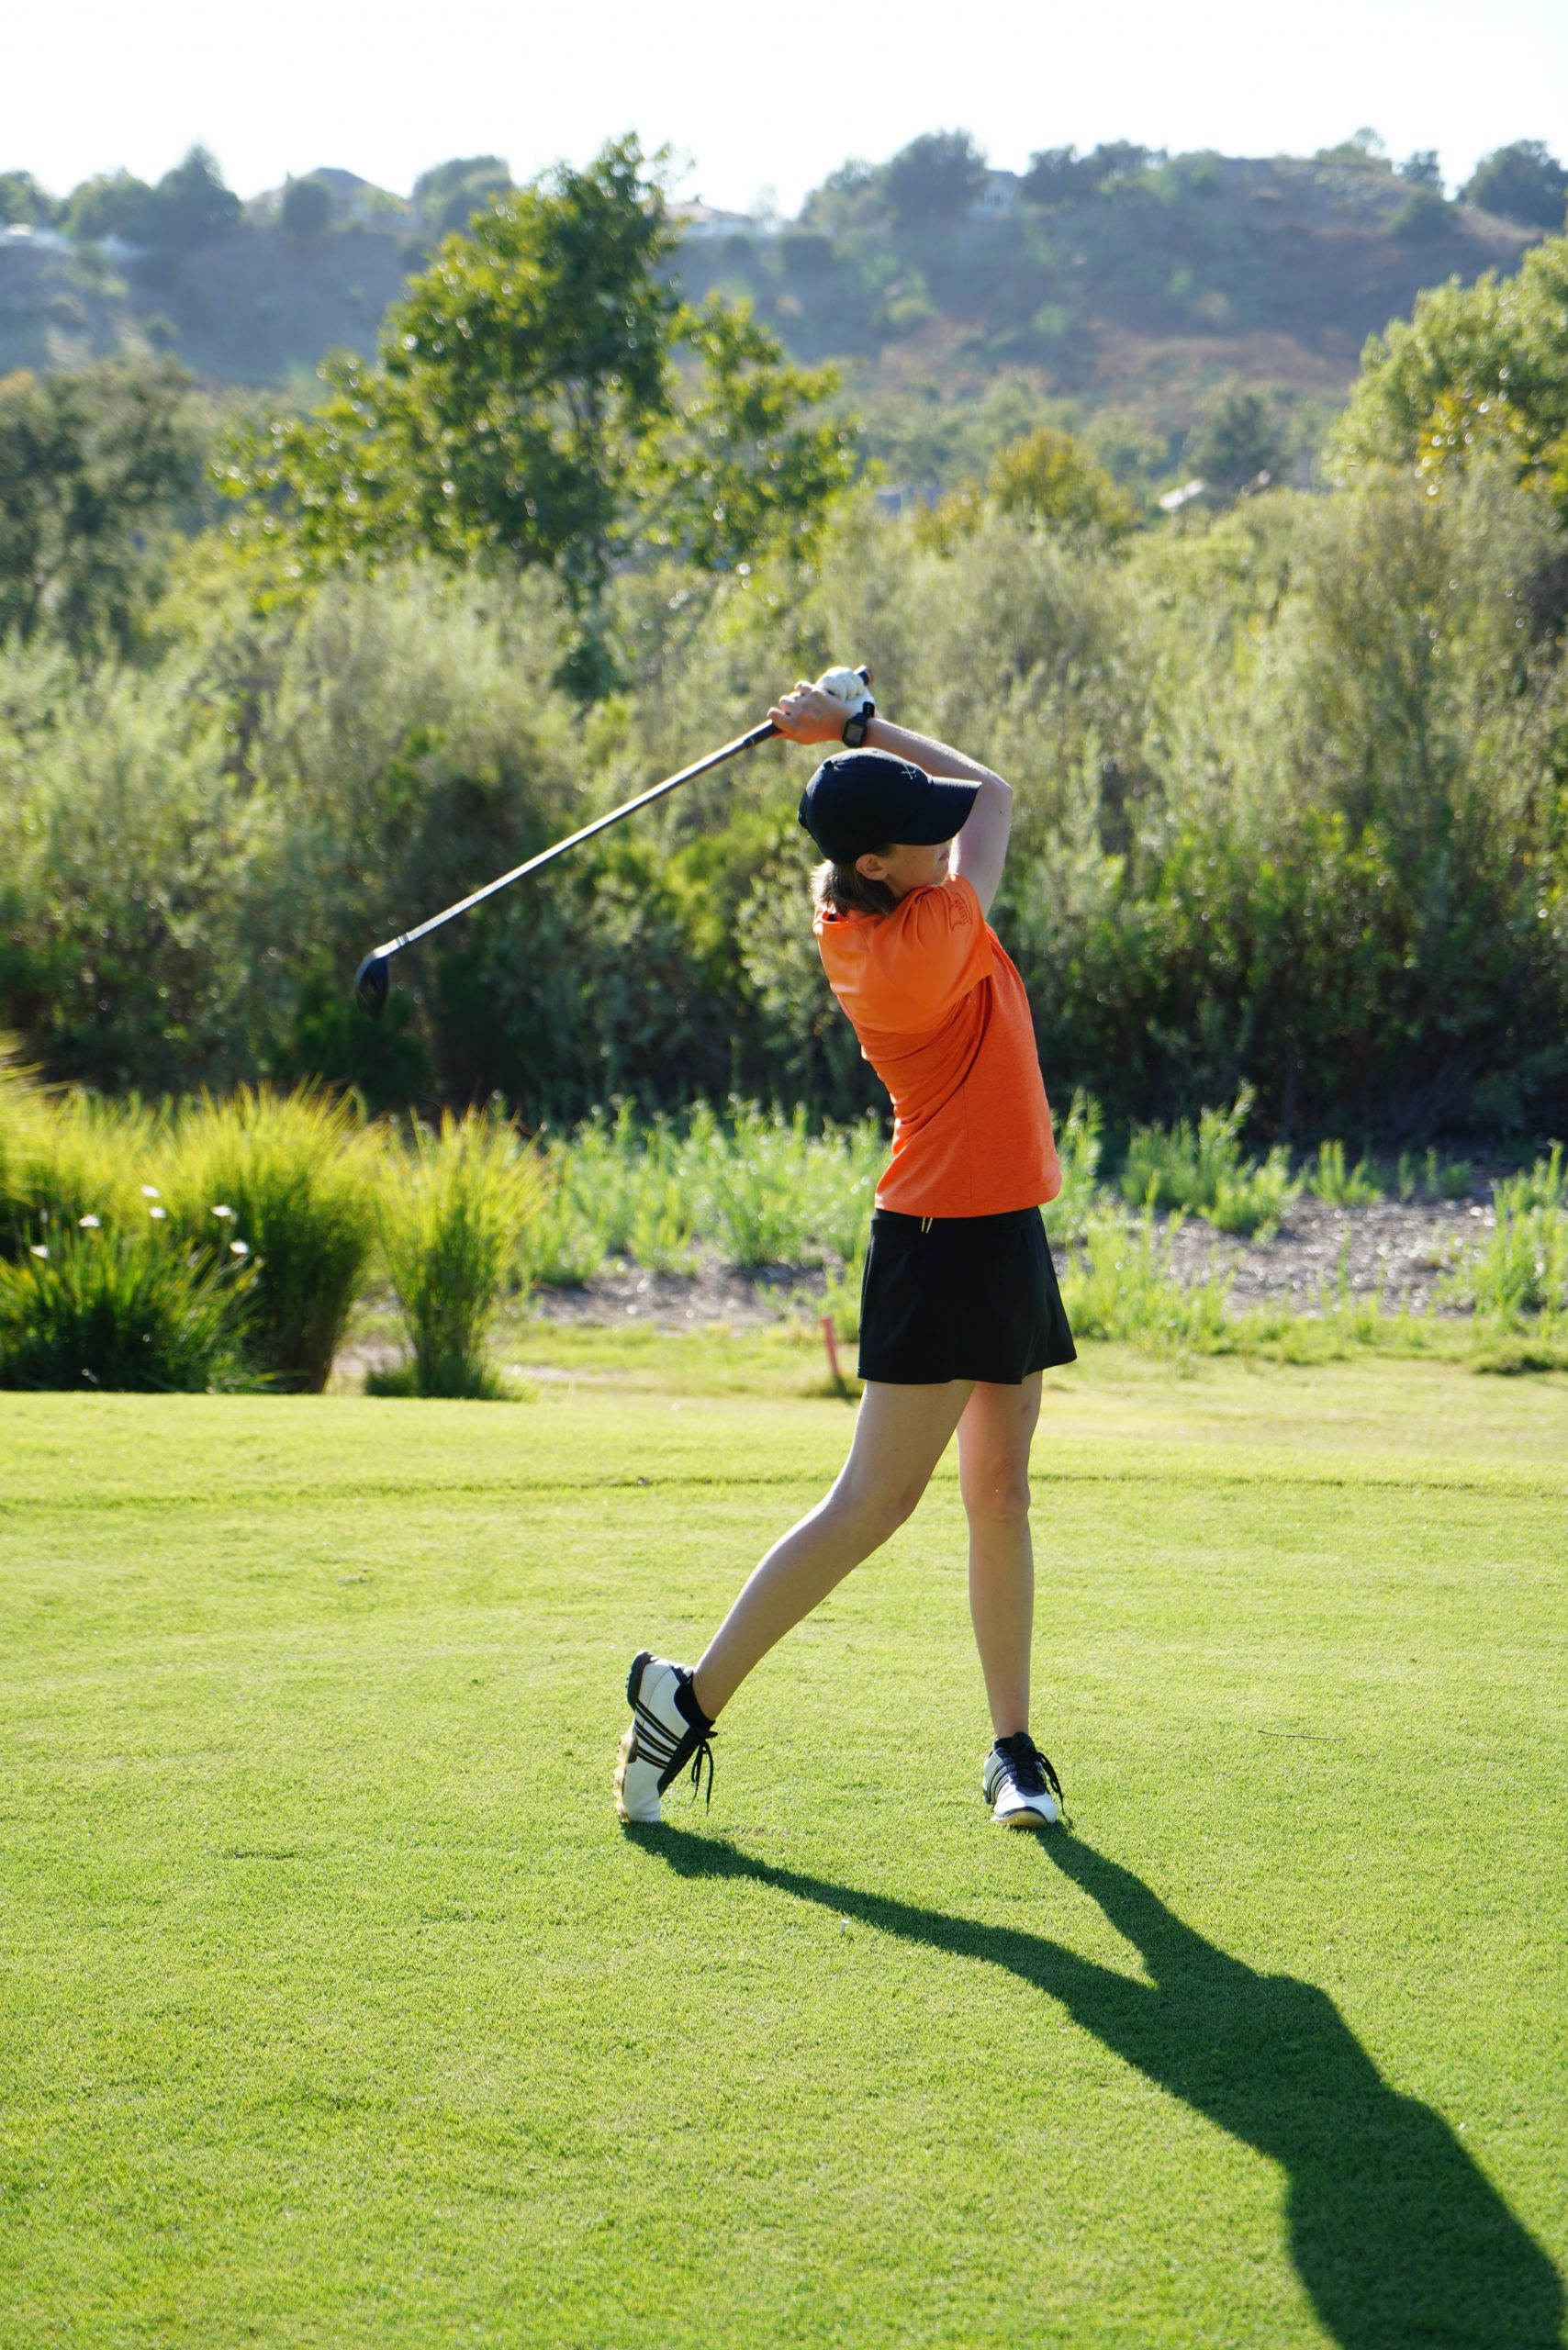 The Single Plane Golf Swing: Is It For You?